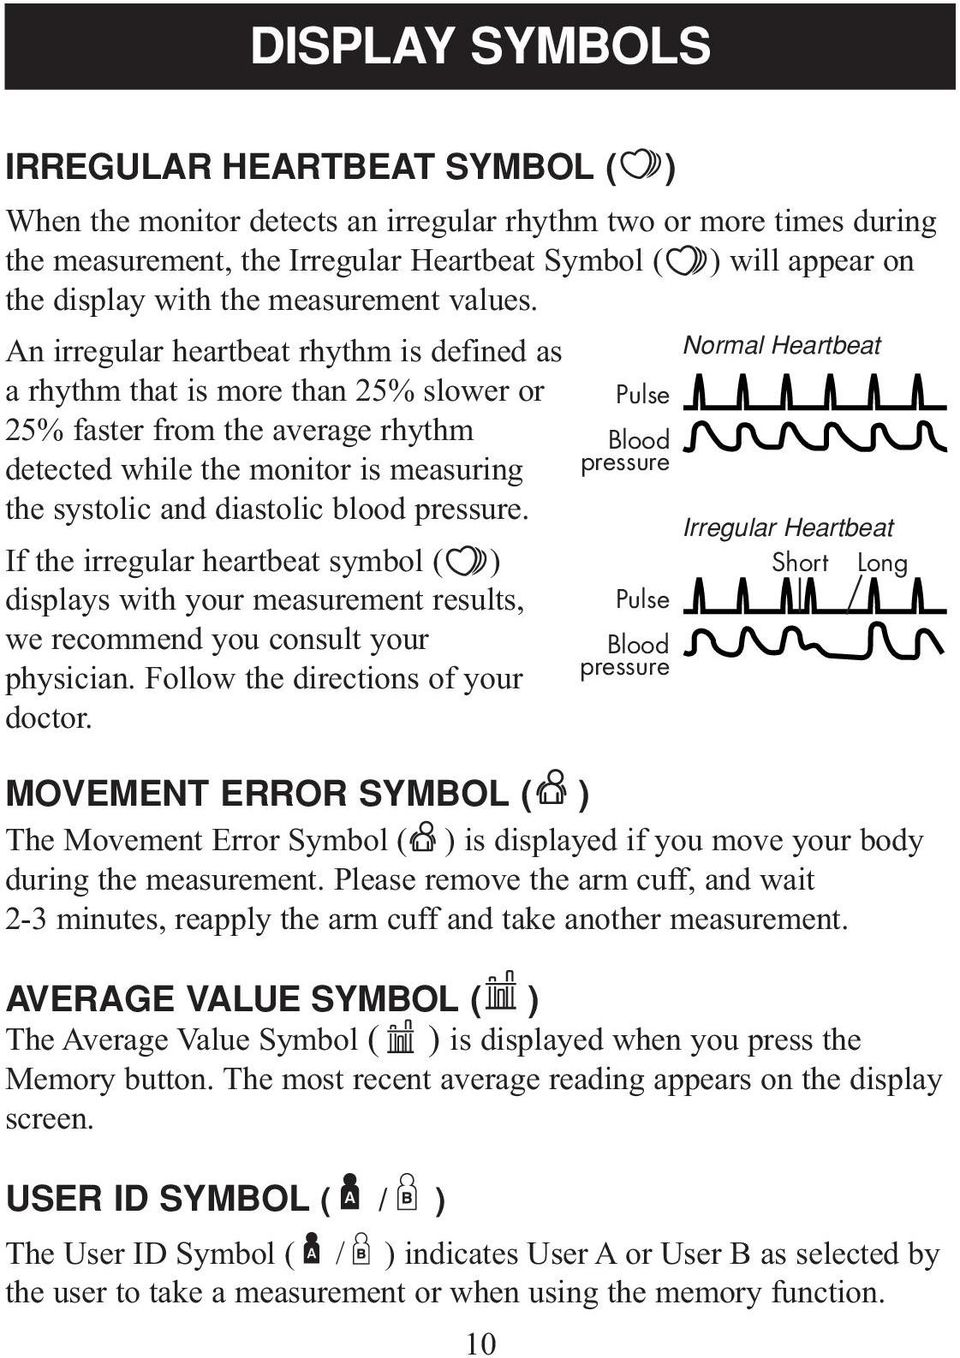 An irregular heartbeat rhythm is defined as a rhythm that is more than 25% slower or 25% faster from the average rhythm detected while the monitor is measuring the systolic and diastolic blood